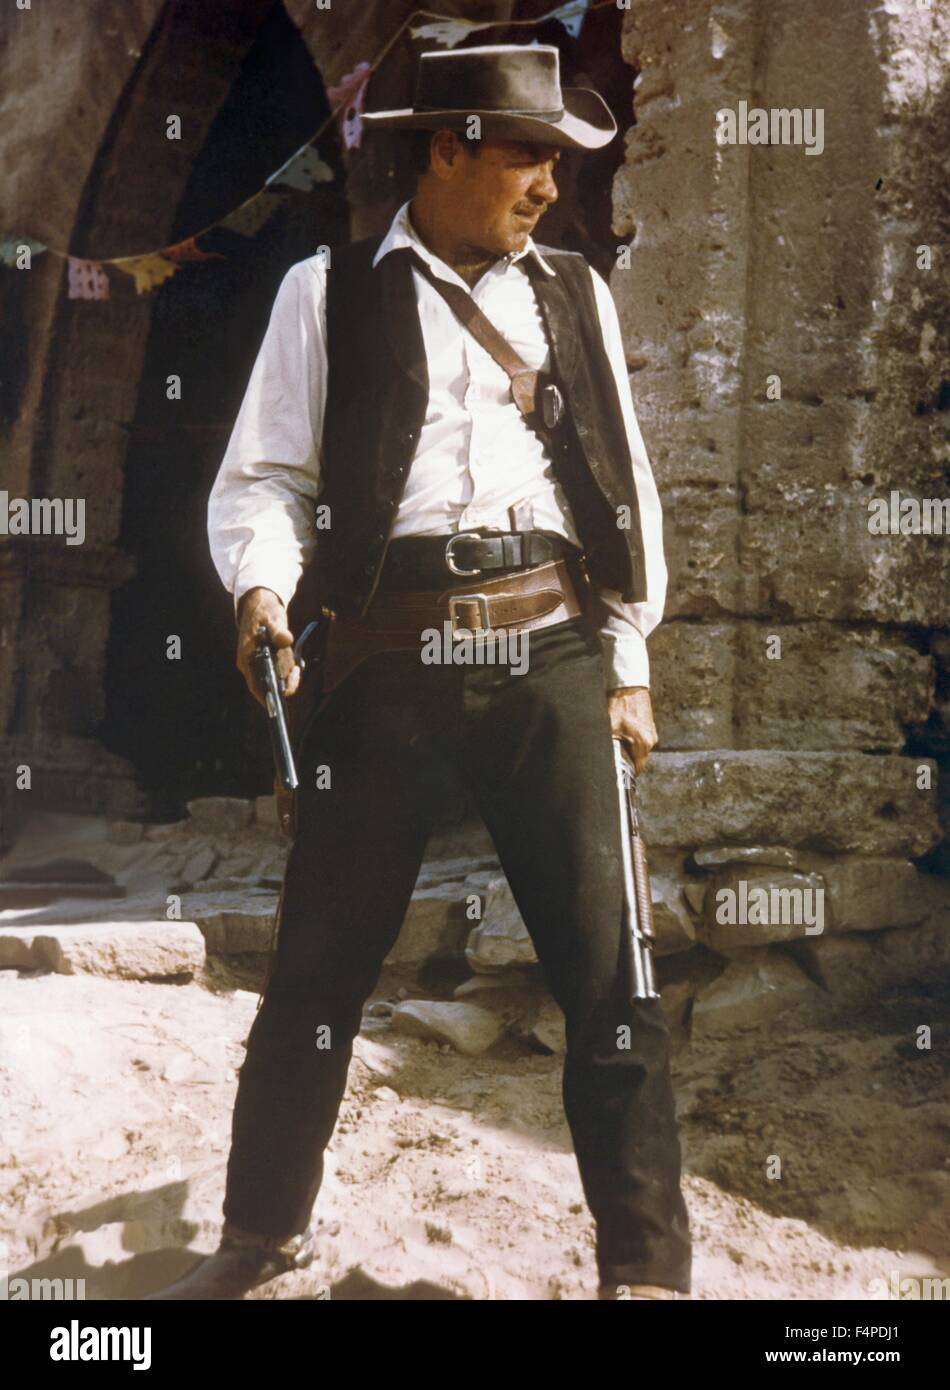 William Holden / The Wild Bunch 1969 réalisé par Sam Peckinpah Photo Stock